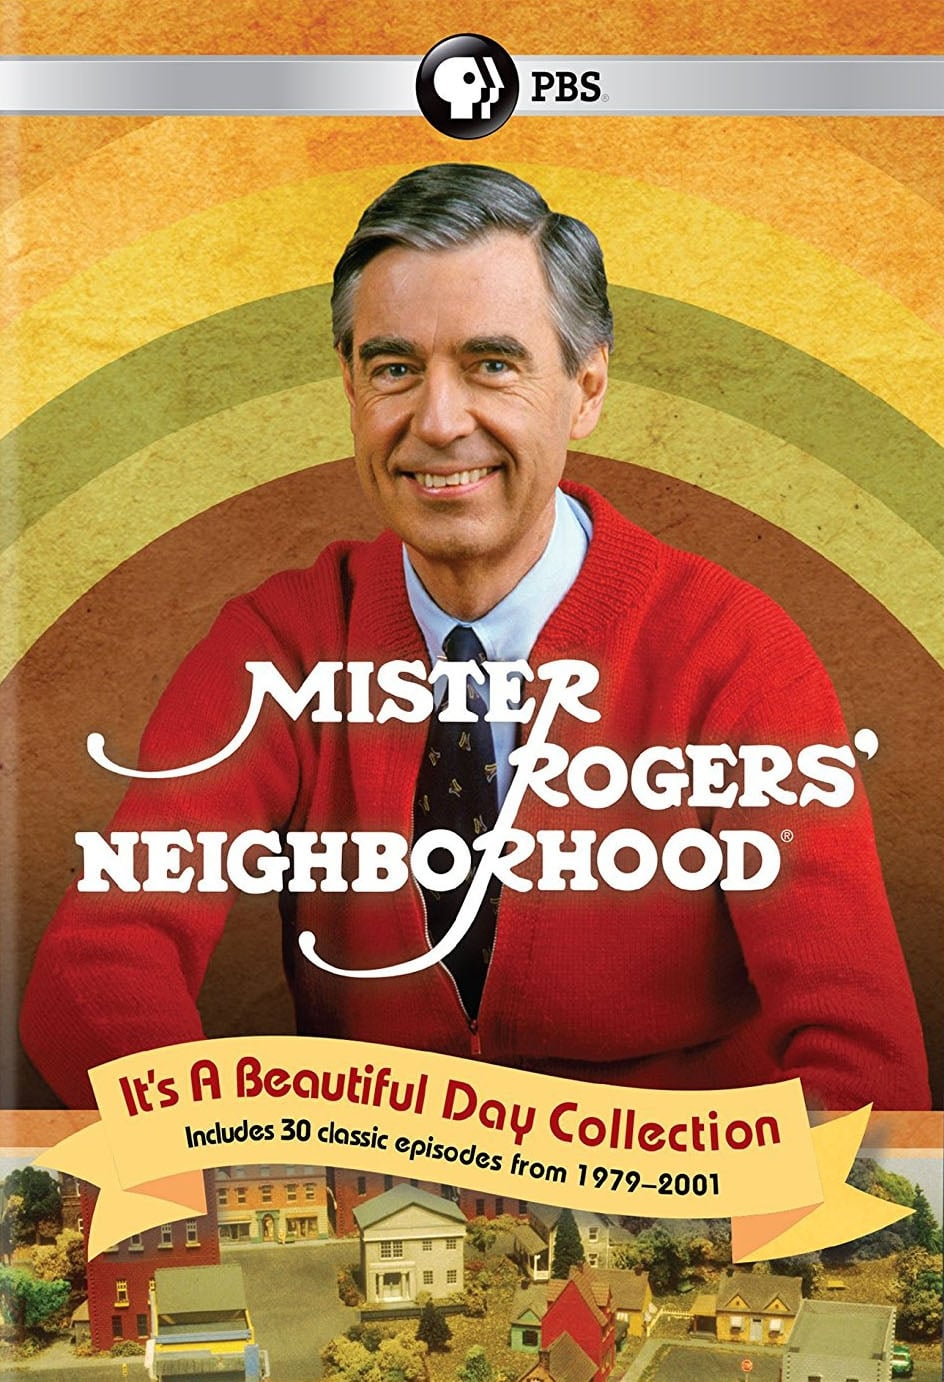 Mister Rogers' Neighborhood: It's a Beautiful Day Collection (1979)